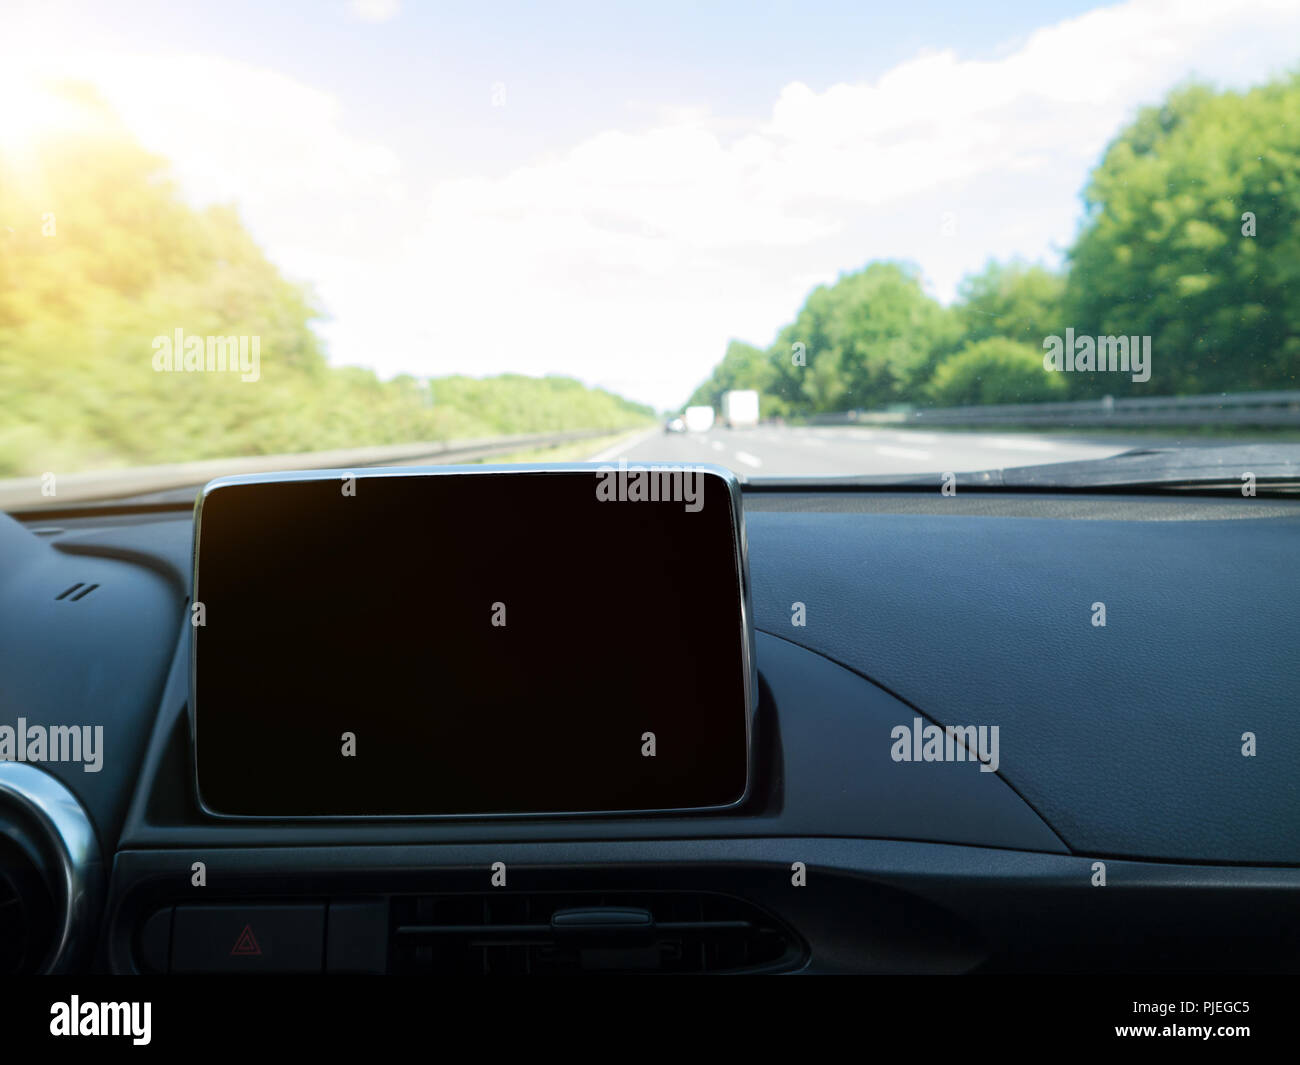 Car Interior with Navigation system and German Autobahn in background - Stock Image